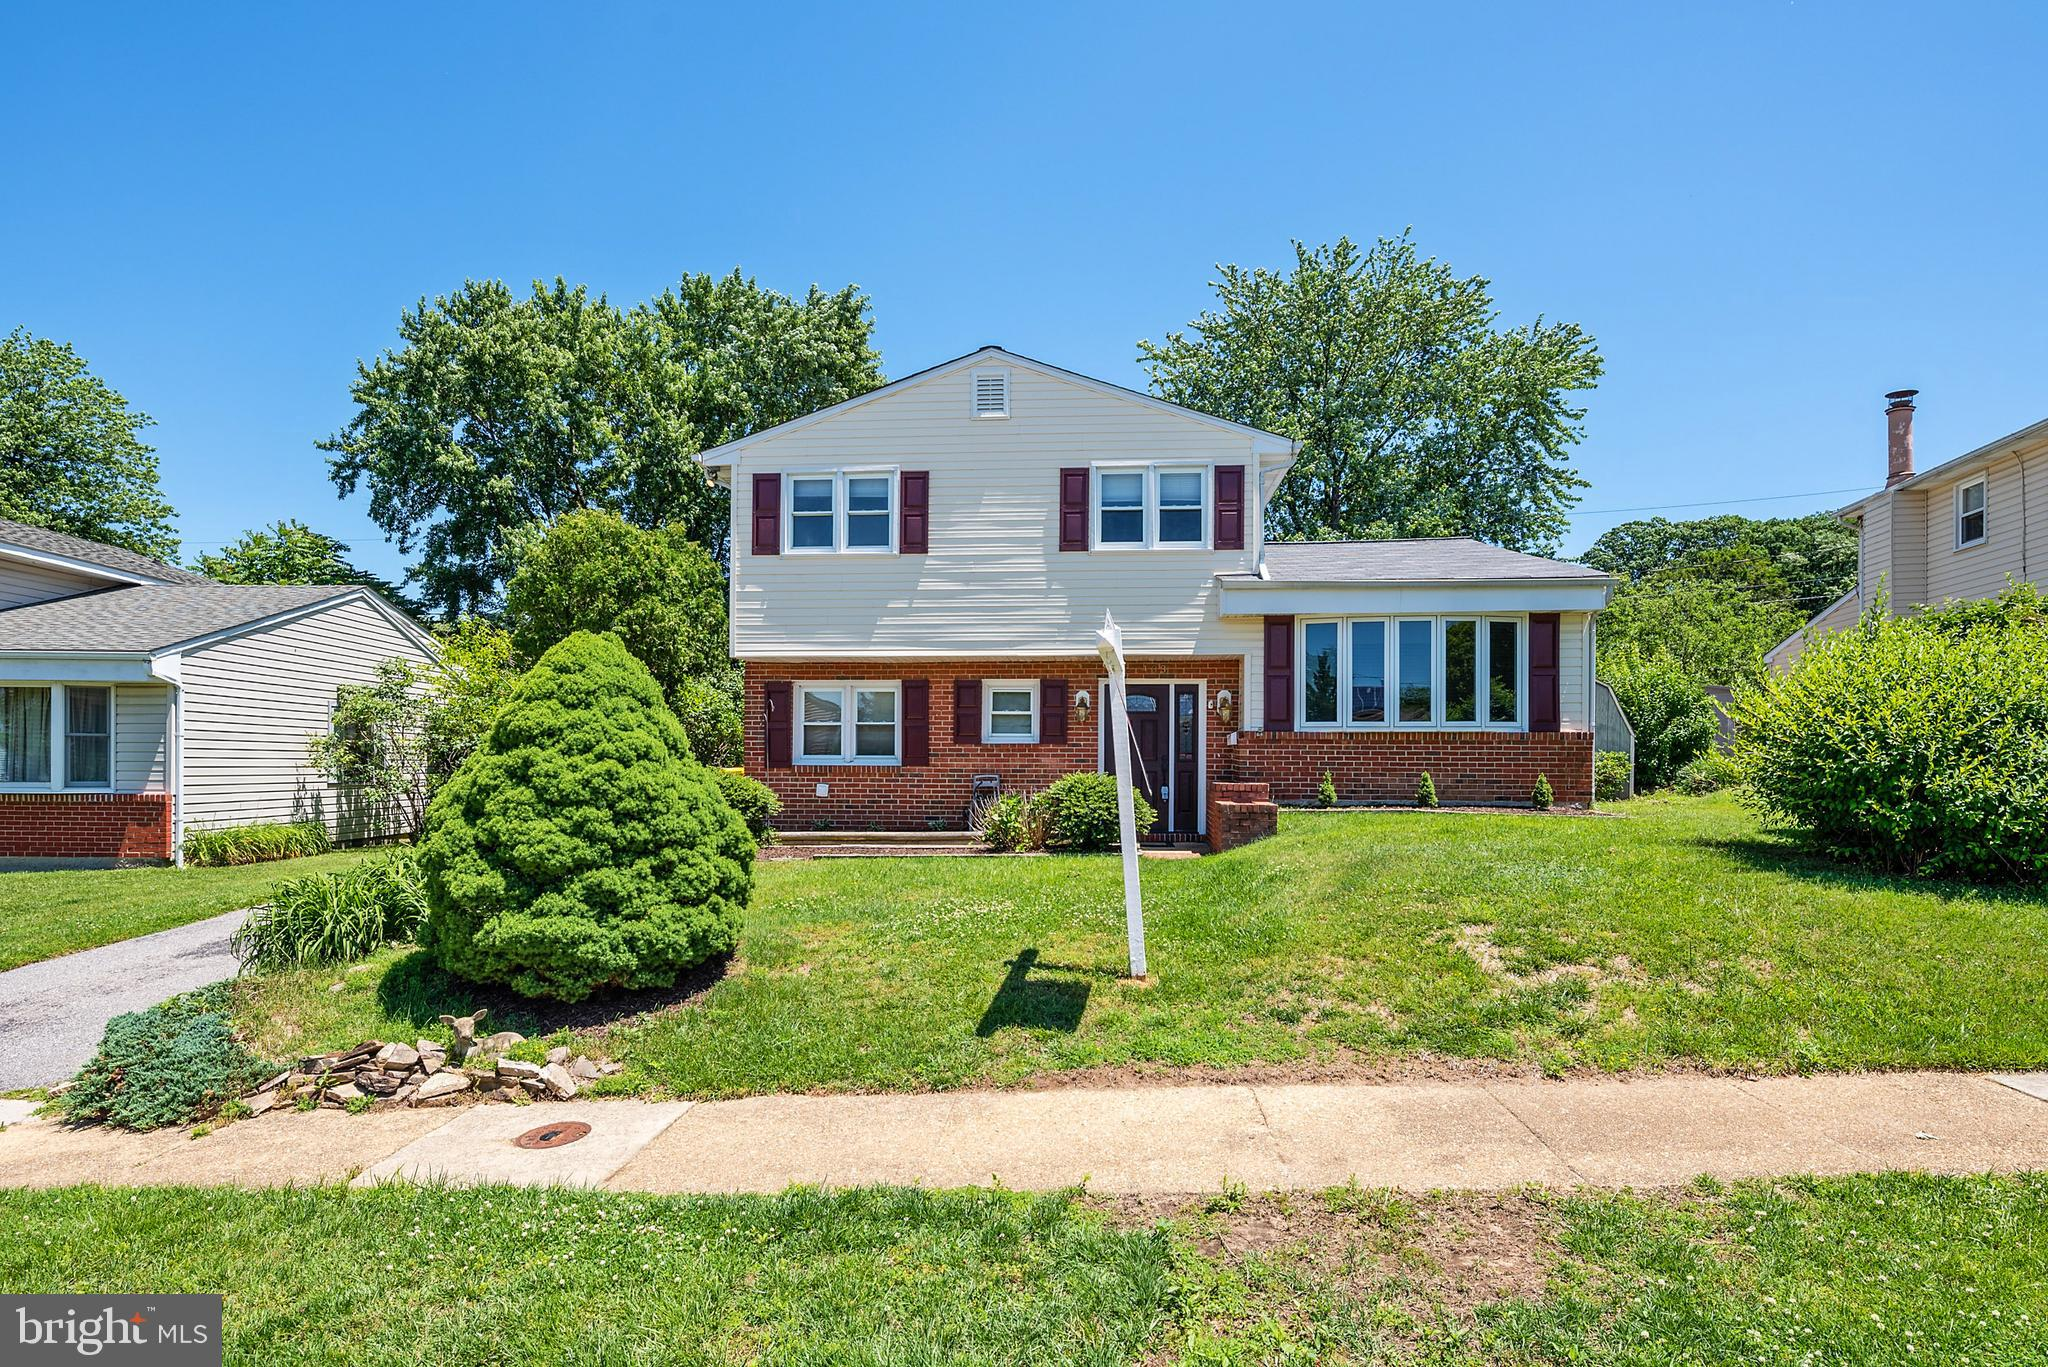 433 SUDBURY ROAD, LINTHICUM HEIGHTS, MD 21090